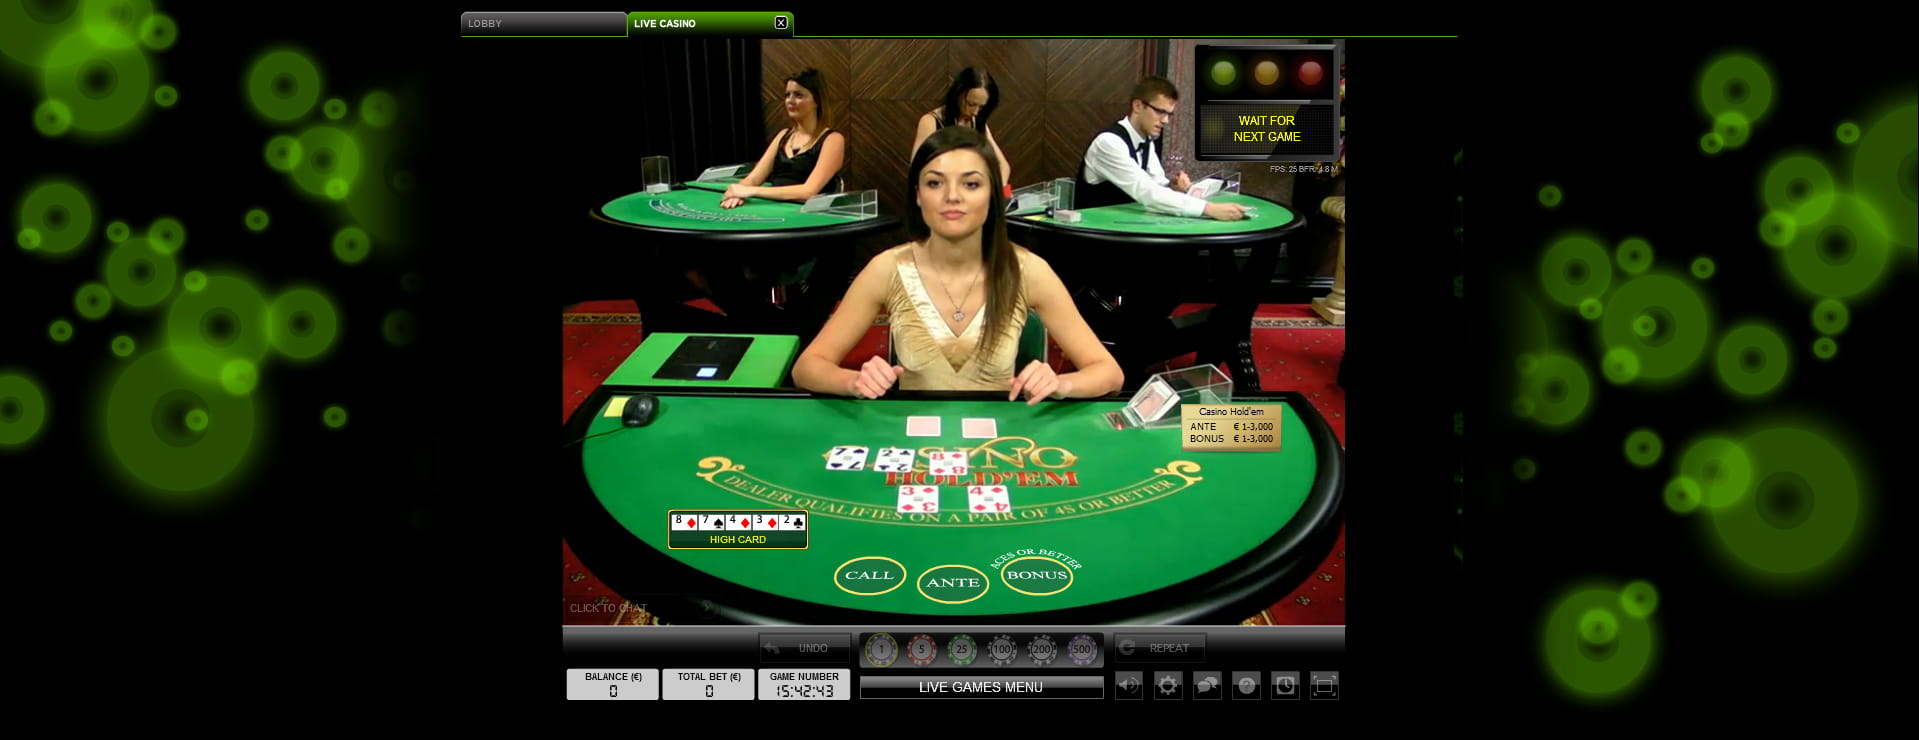 Play Live Casino Holdem Online at Casino.com NZ